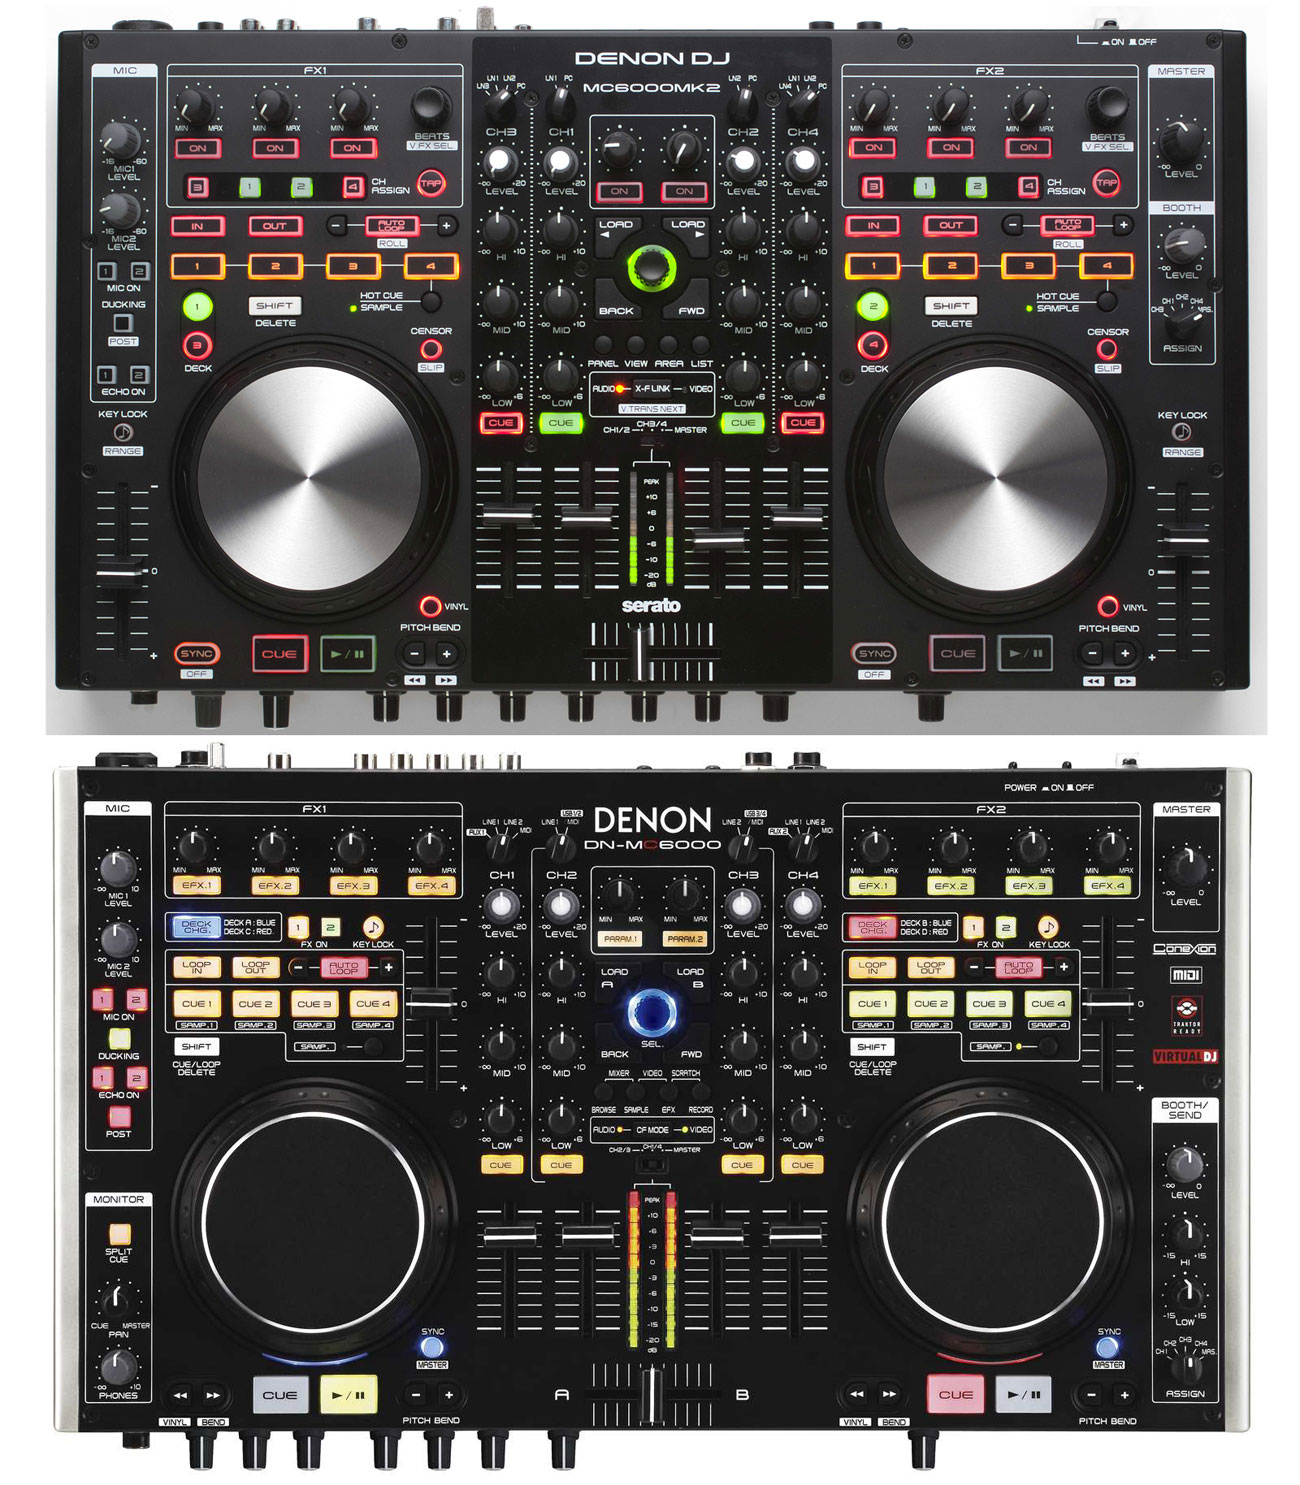 MC-6000MK2 vs MC-6000